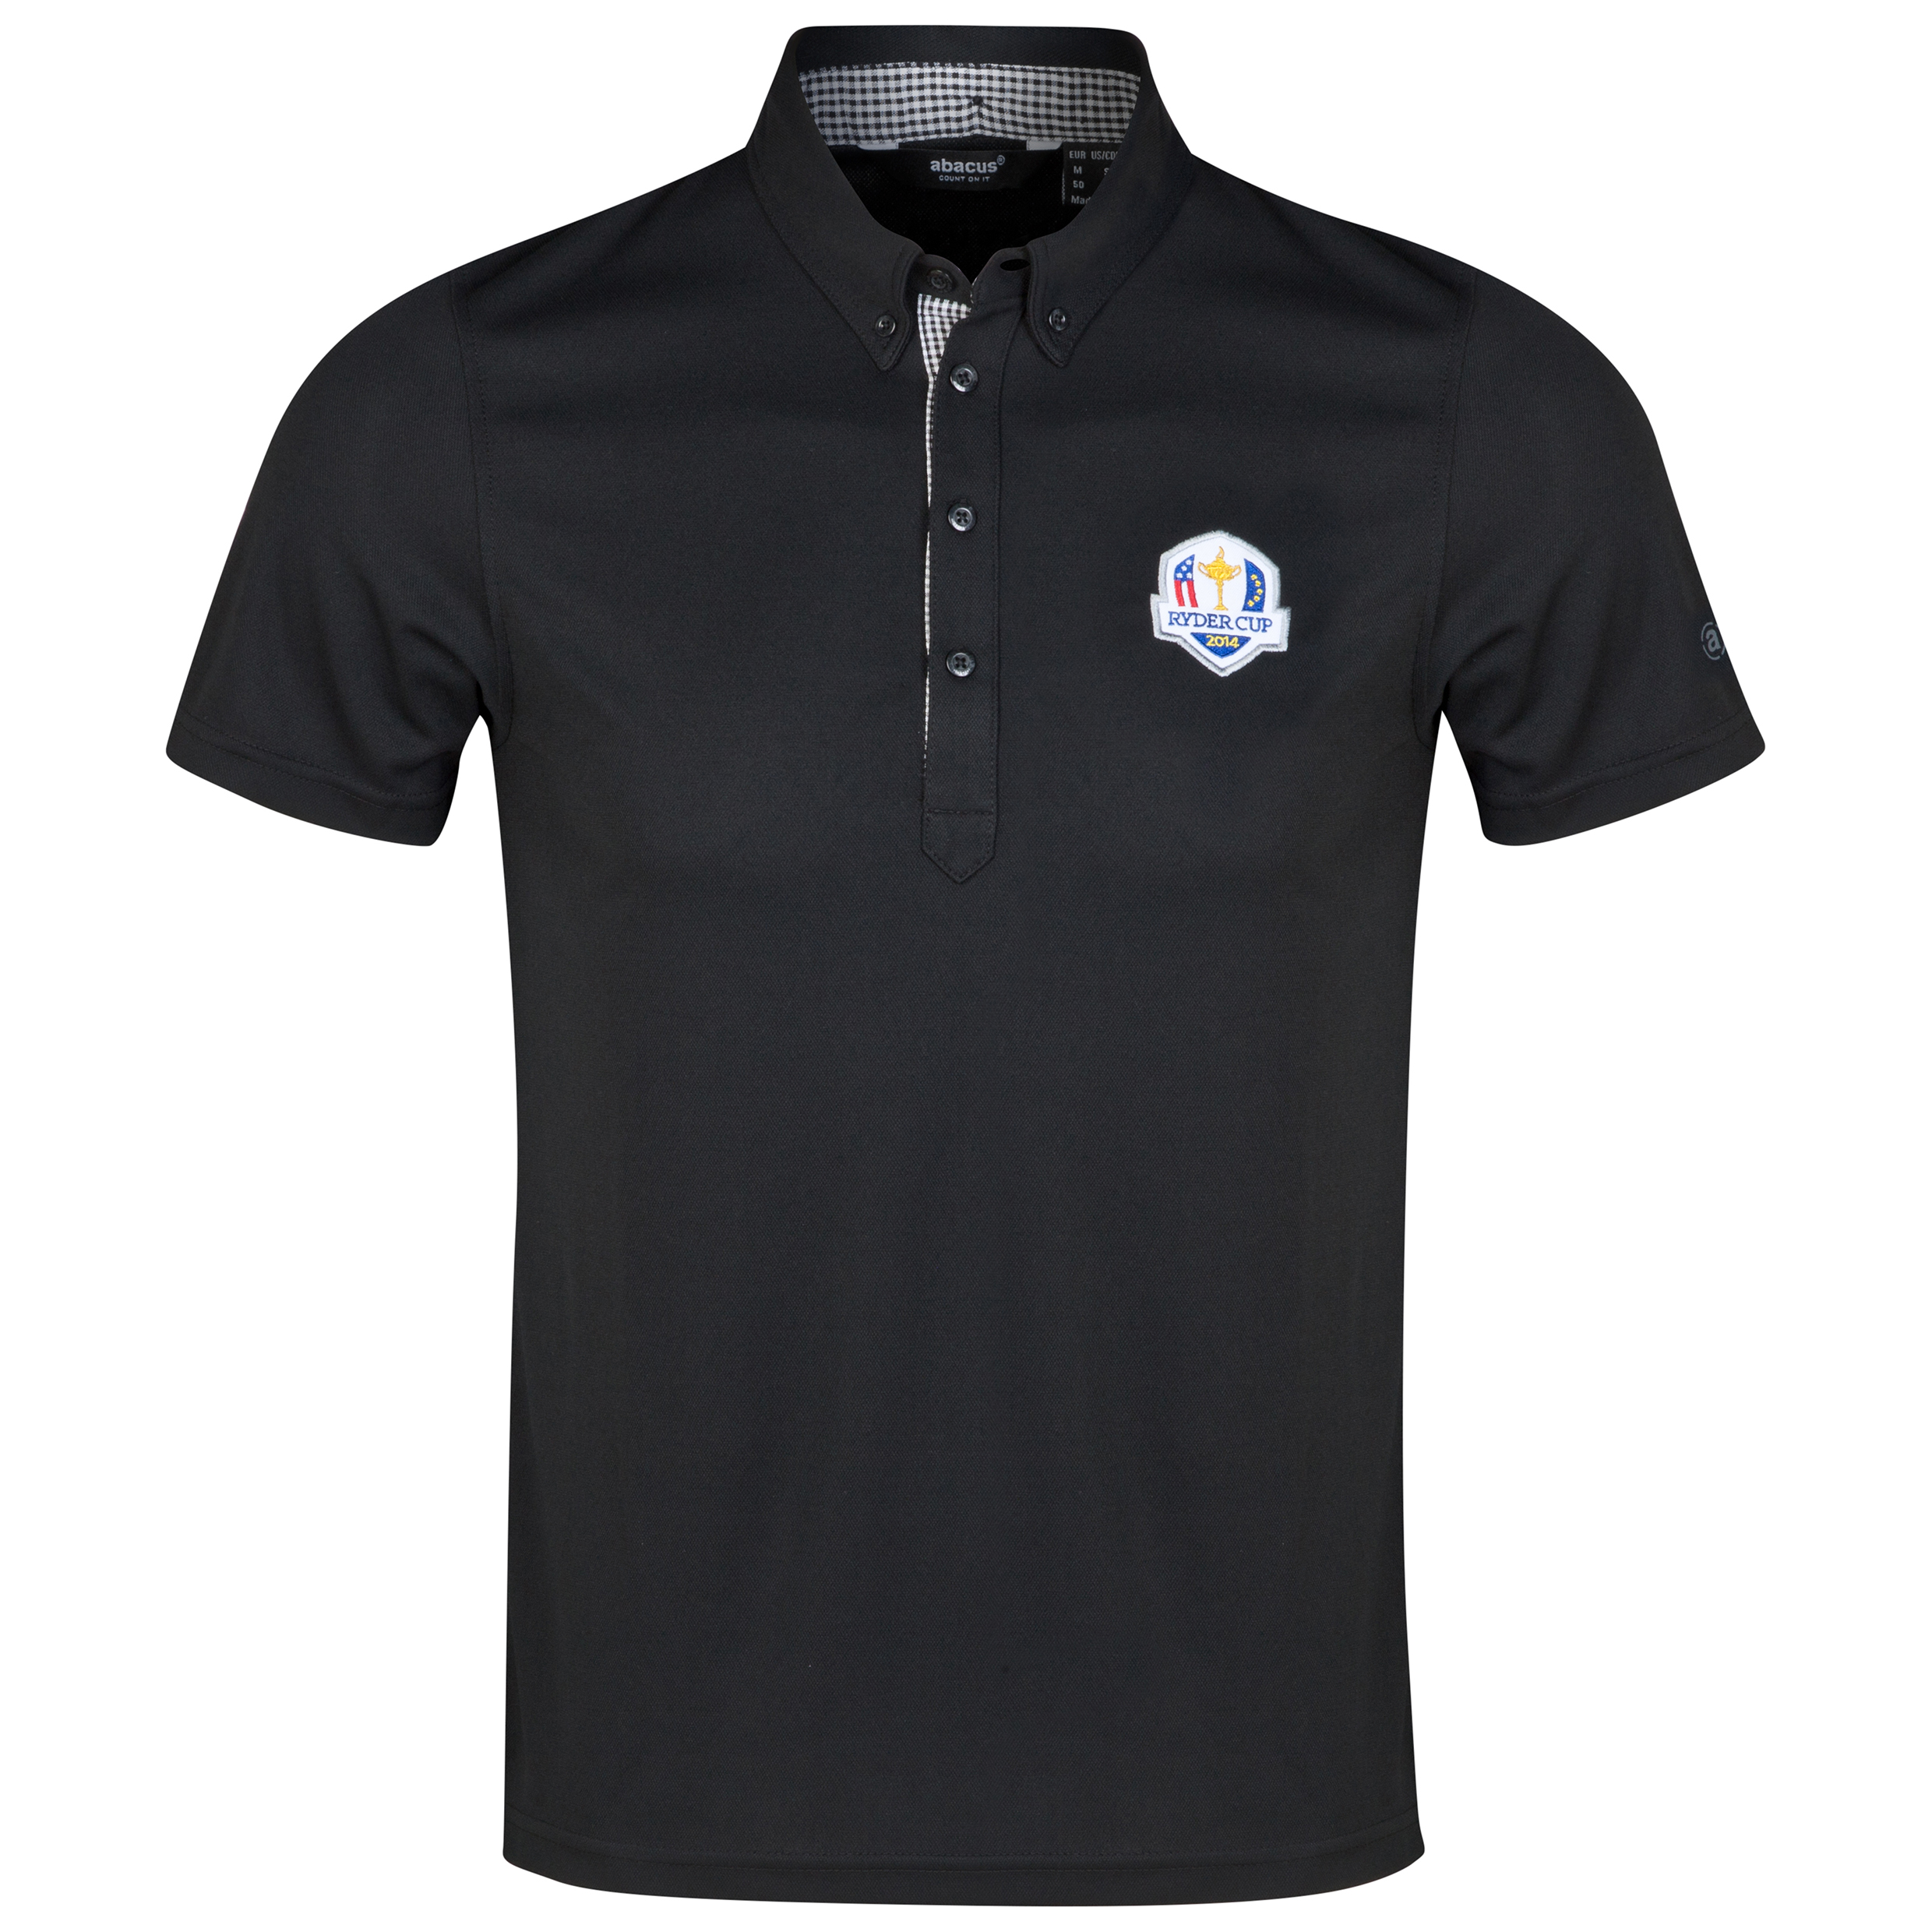 The 2014 Ryder Cup abacus Mens Oliver Polo - Black